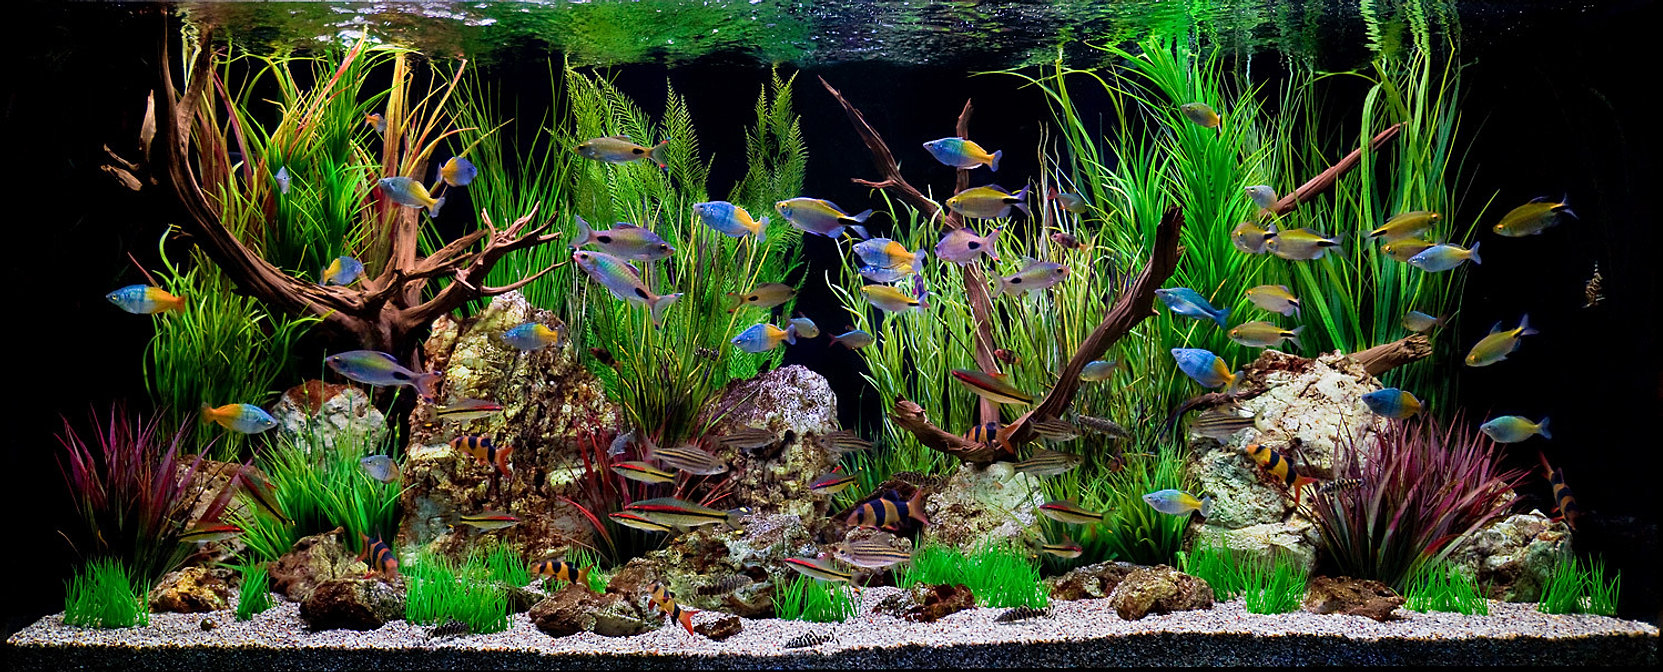 Fish for aquarium freshwater - 62_1aquarium_tropicalfish_fishtank 62_1aquarium_tropicalfish_fishtank